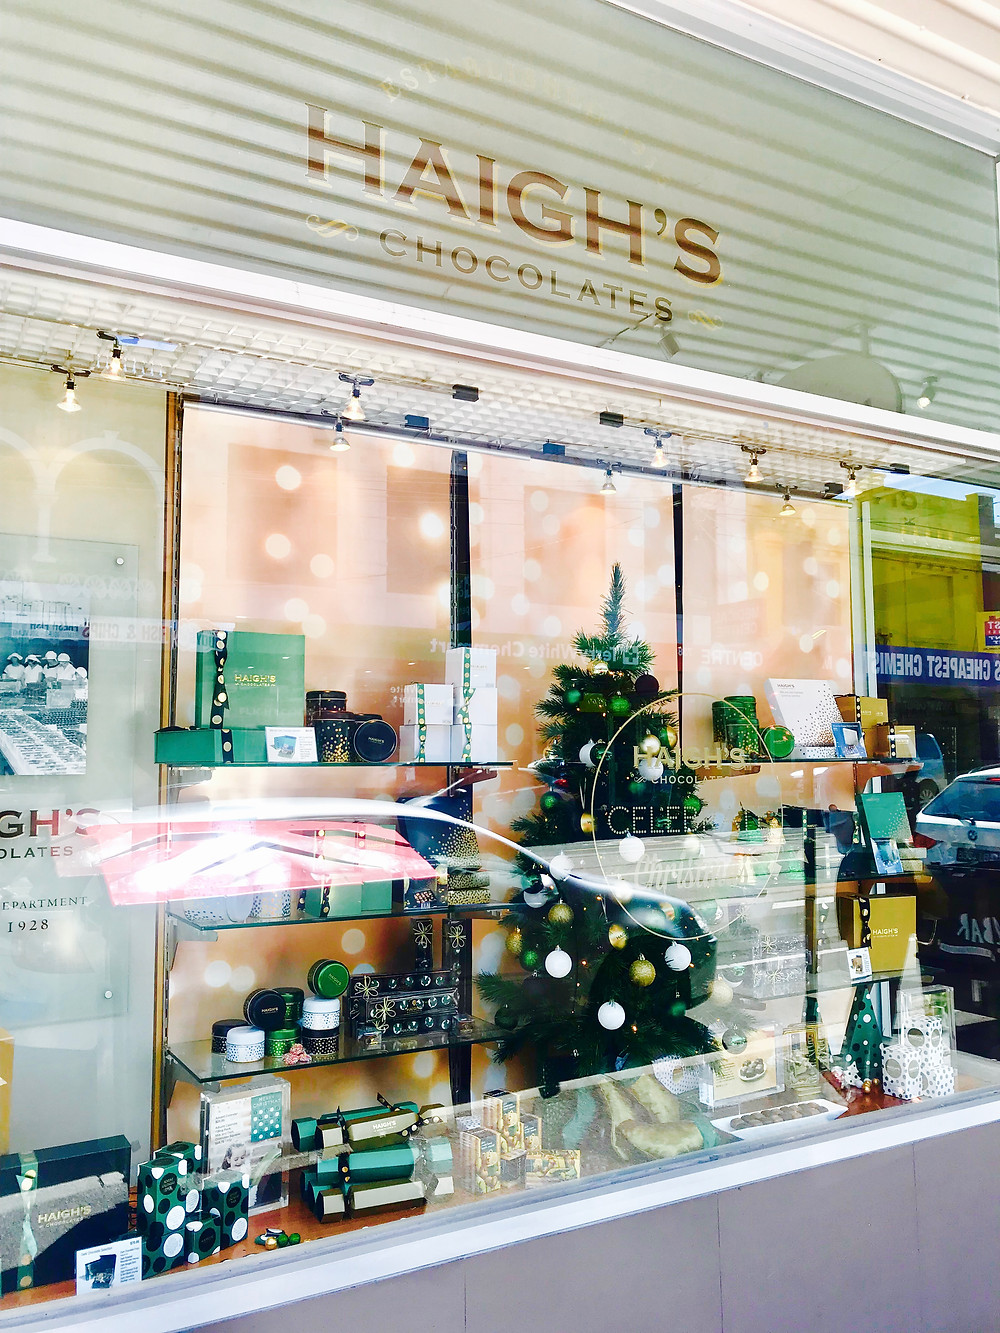 Haigh's Chocolate Shopfront Window